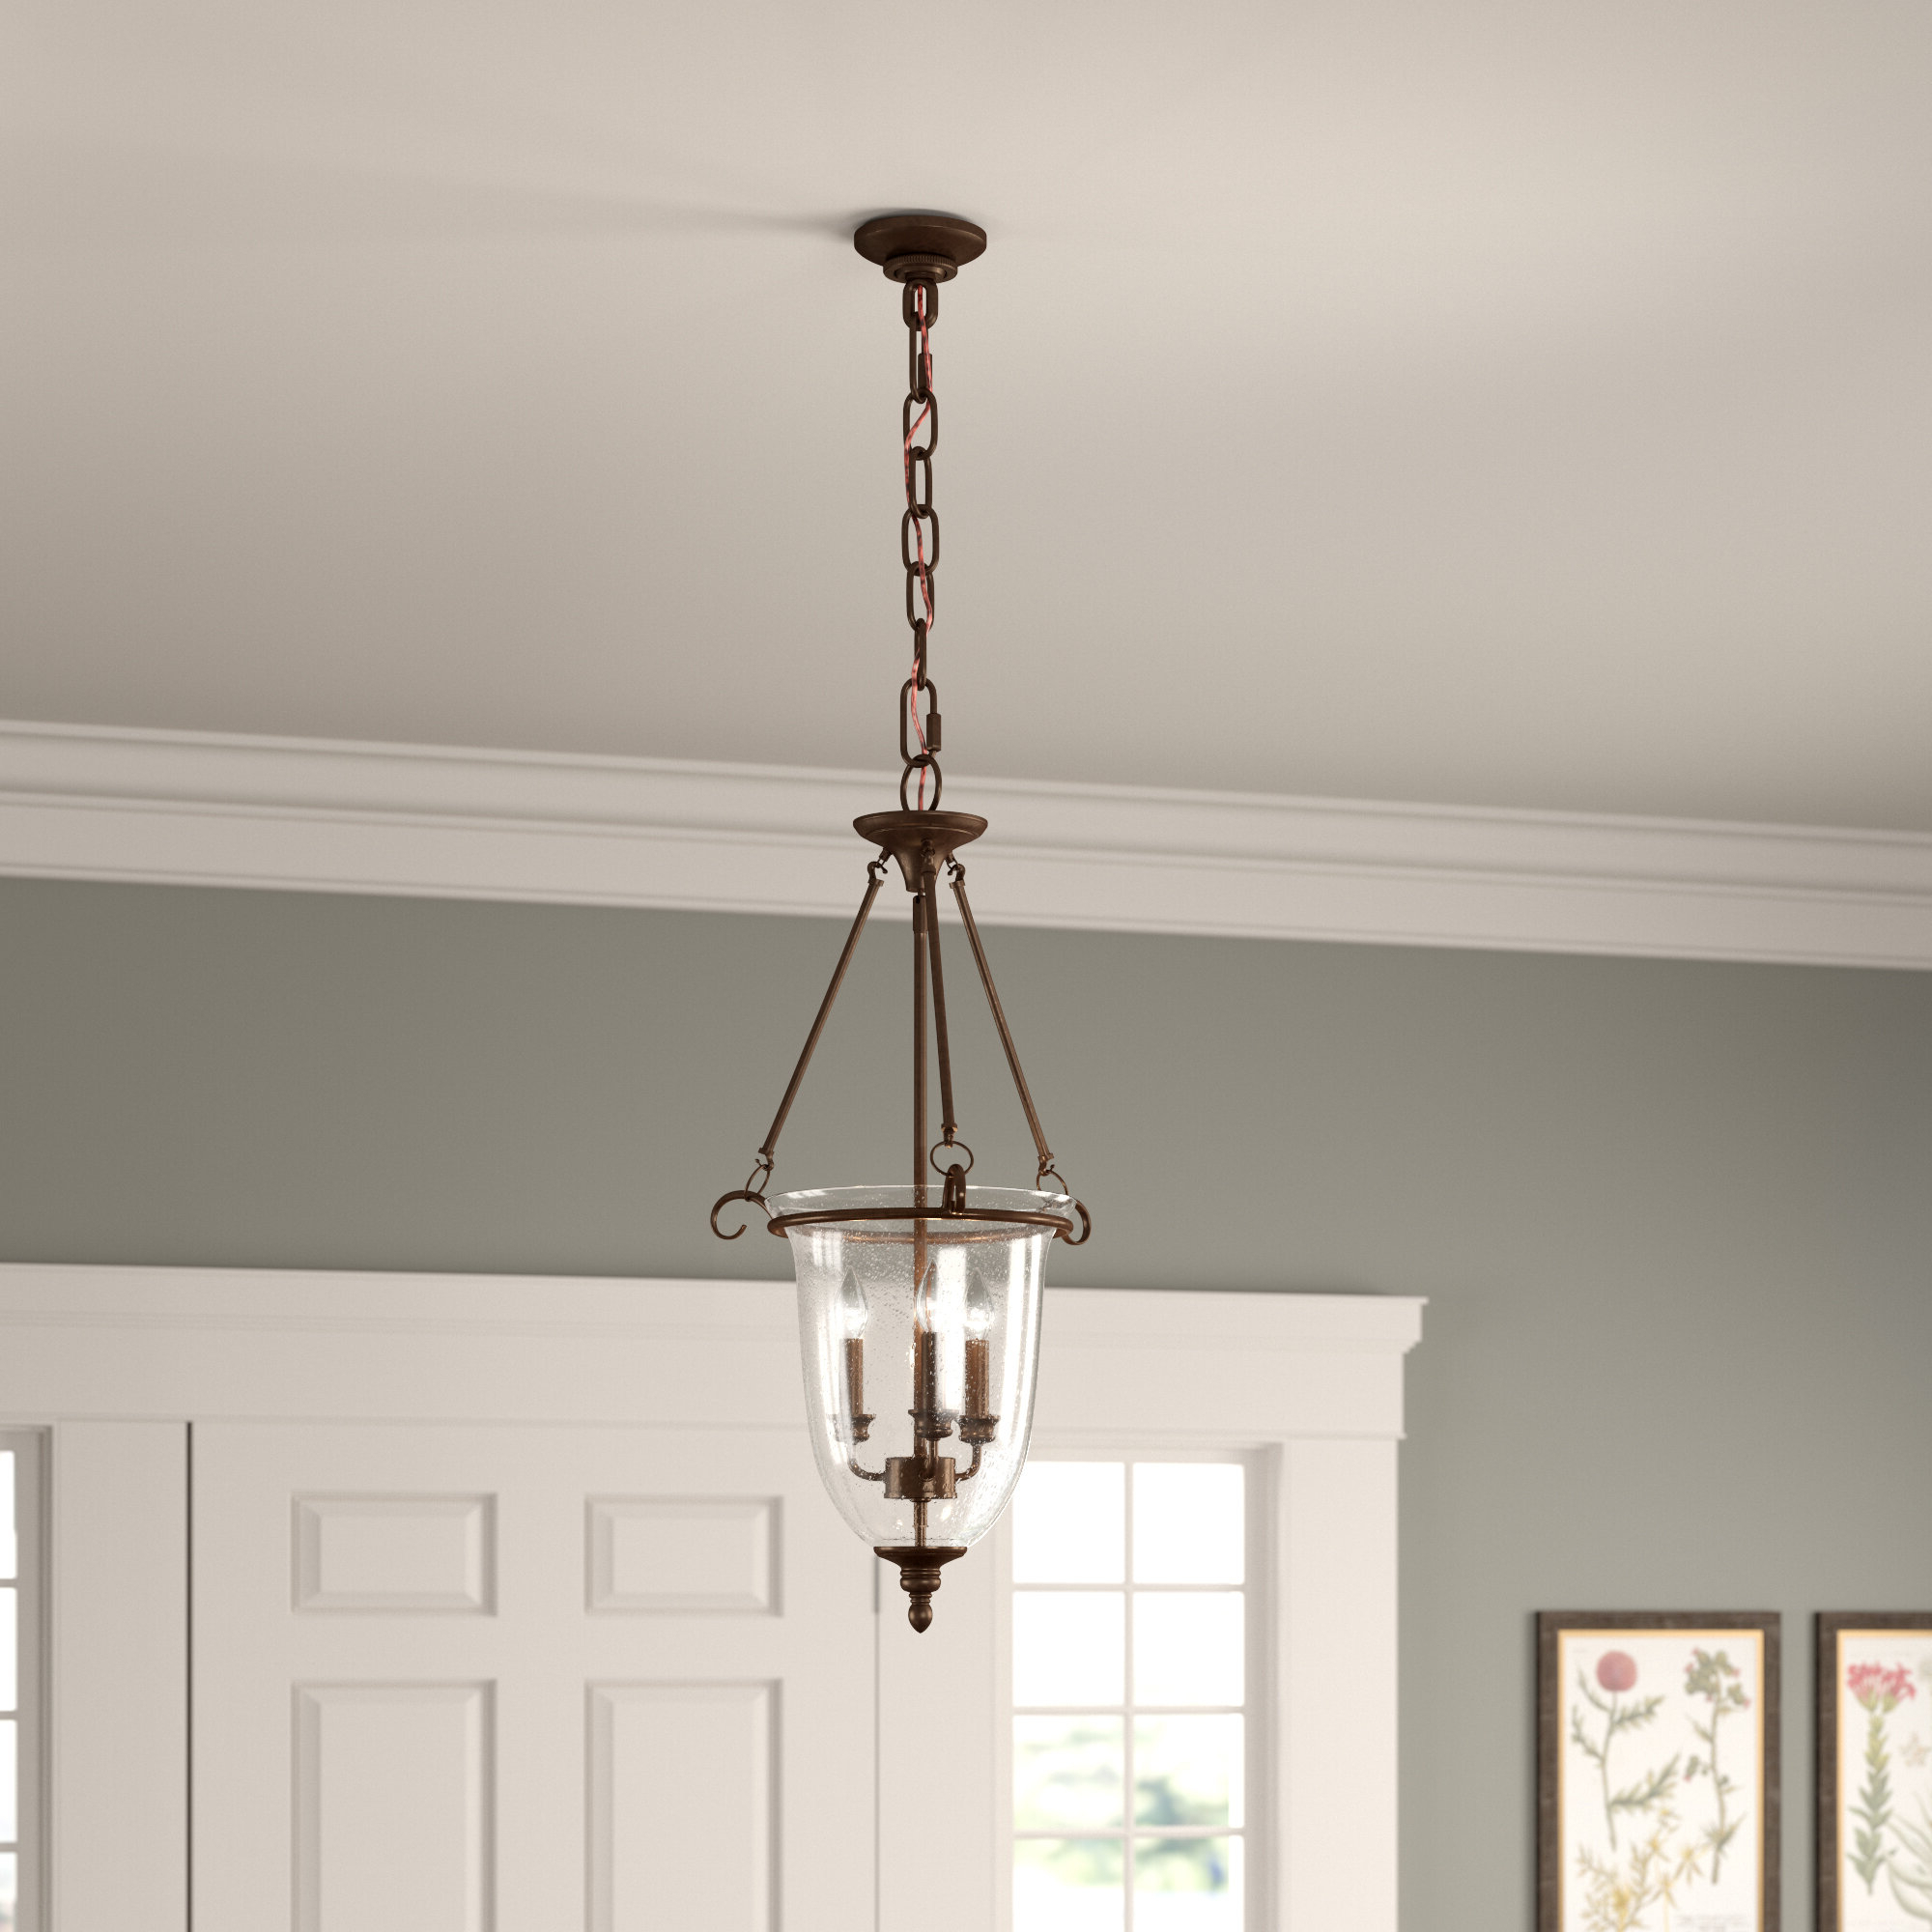 Most Recent 3 Light Single Urn Pendant Throughout 3 Light Single Urn Pendants (Gallery 6 of 20)